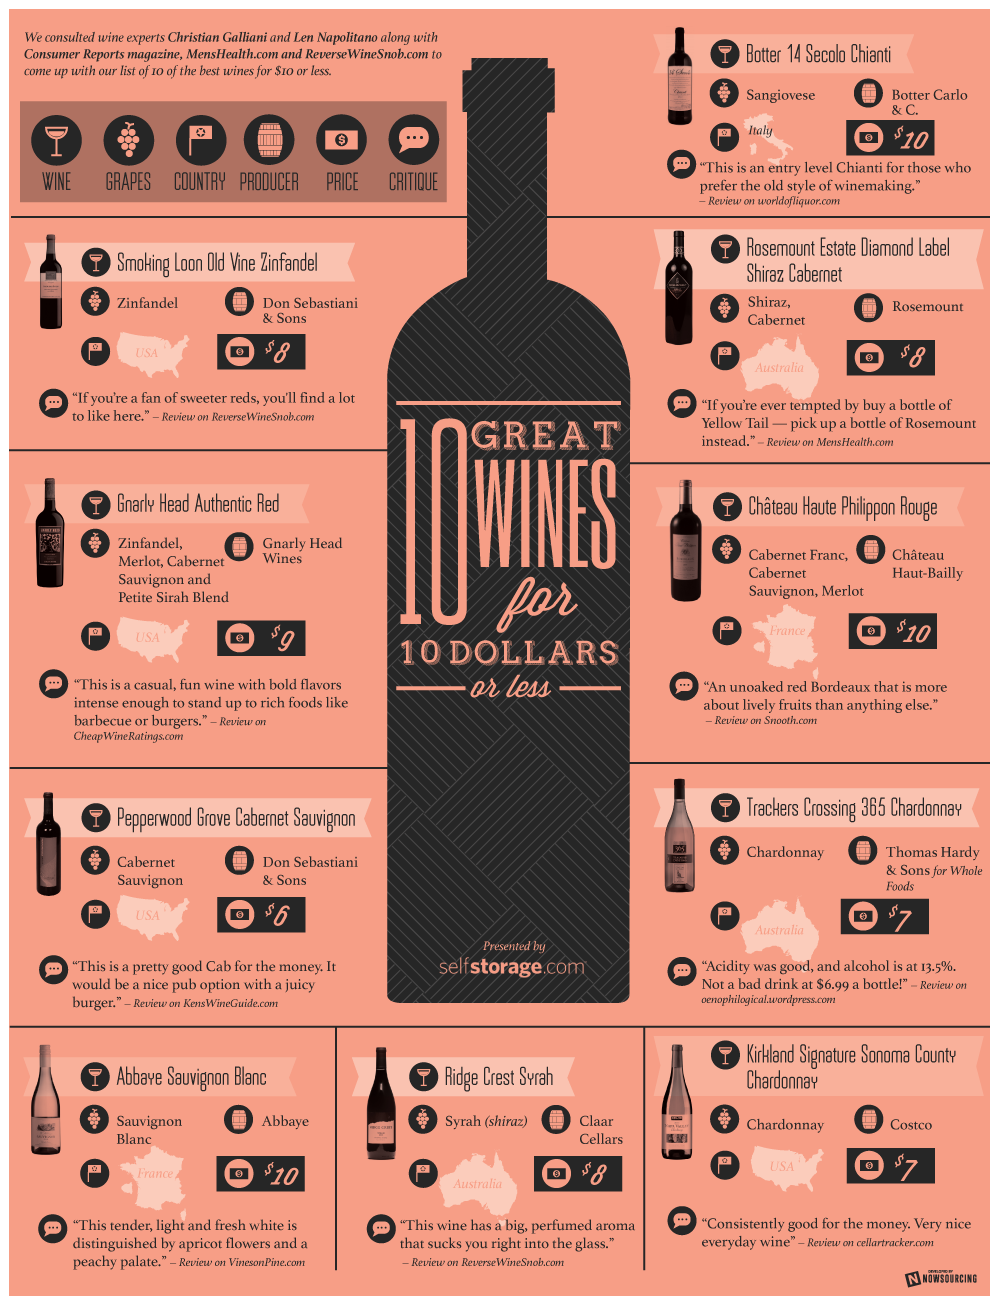 Great Tasting Wines For 10 Or Less Infographic Wine Infographic Wines Wine Tasting